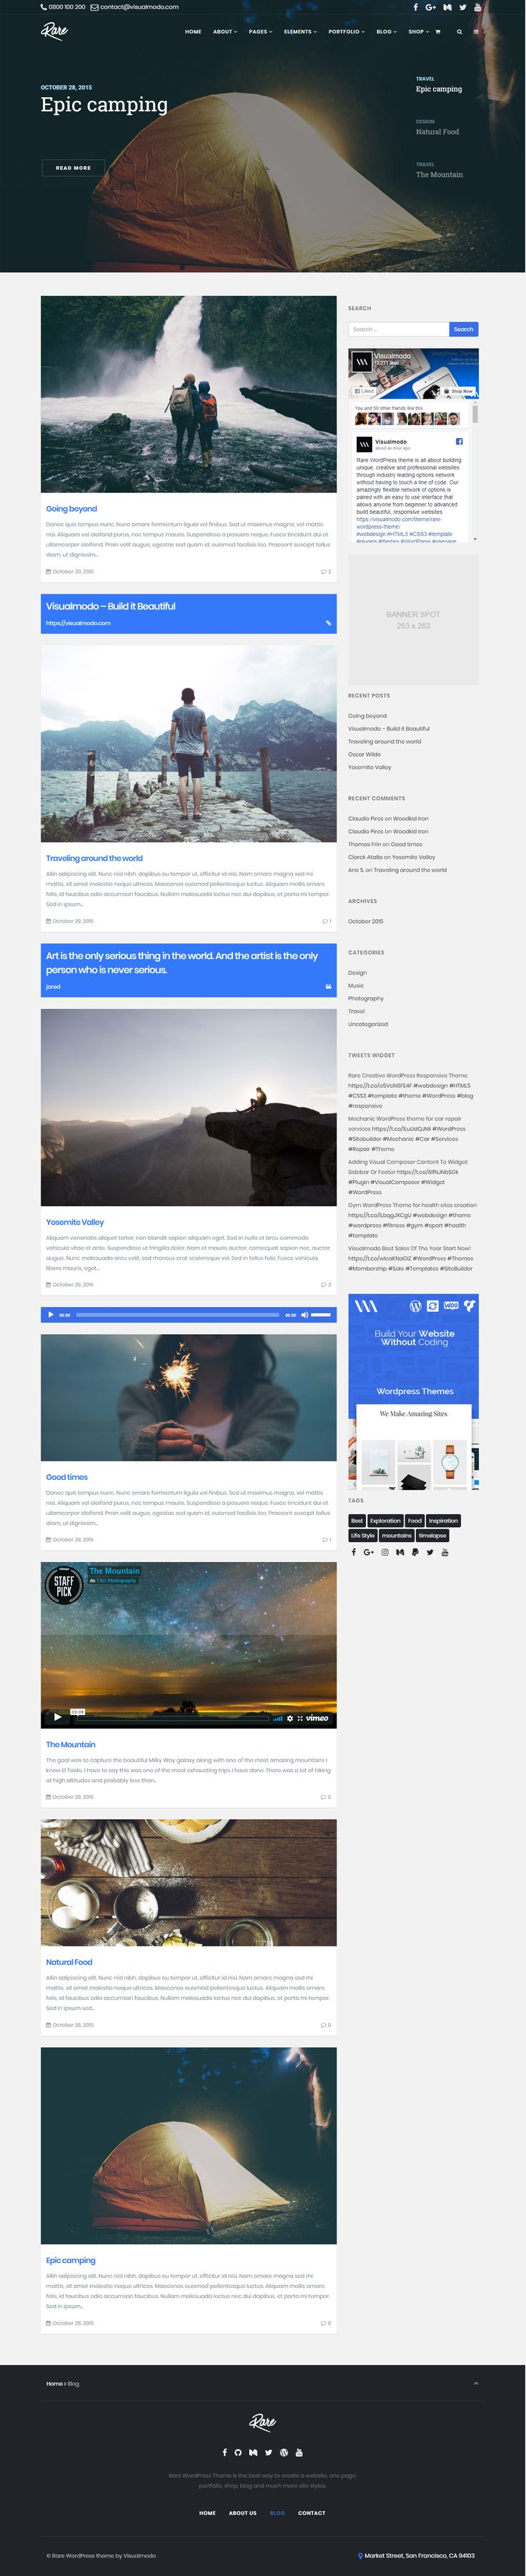 Rare WordPress theme is all about building unique, creative and professional websites through industry leading options network without having to touch a line of code. Our amazingly flexible network of options is paired with an easy to use interface that allows anyone from beginner to advanced build beautiful, responsive websites https://visualmodo.com/theme/rare-wordpress-theme/ #webdesign #HTML5 #CSS3 #template #plugins #themes #WordPress #onepage #ecommerce #responsive #retina #marketing…